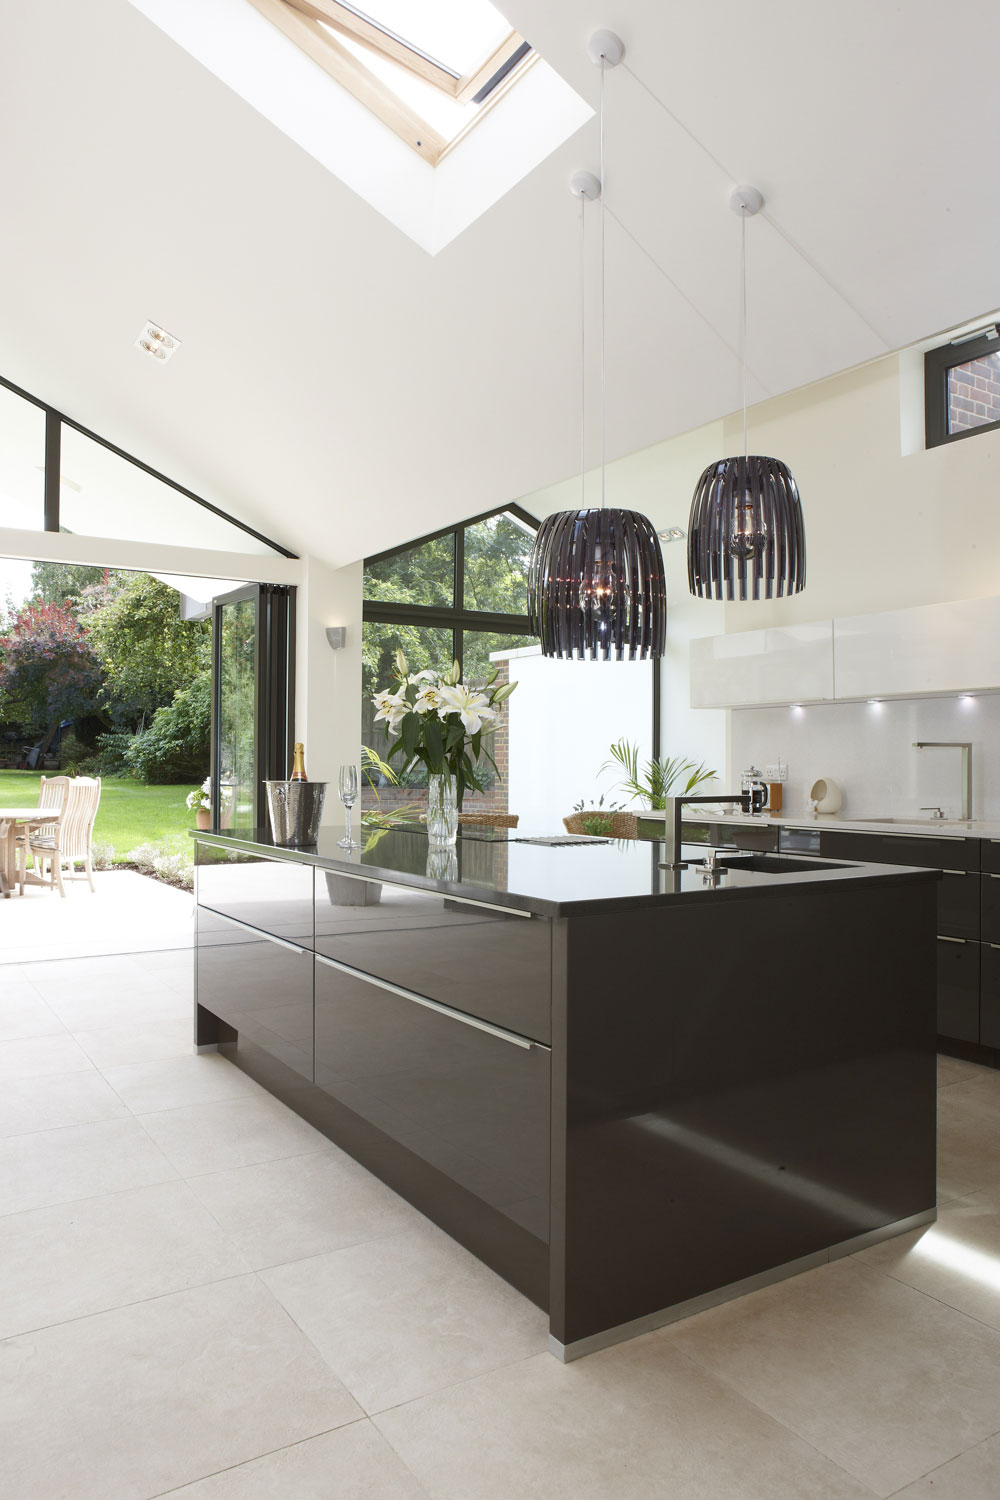 Hitchin Kitchen by mace architects | London Residential Photographer | Property Photographer